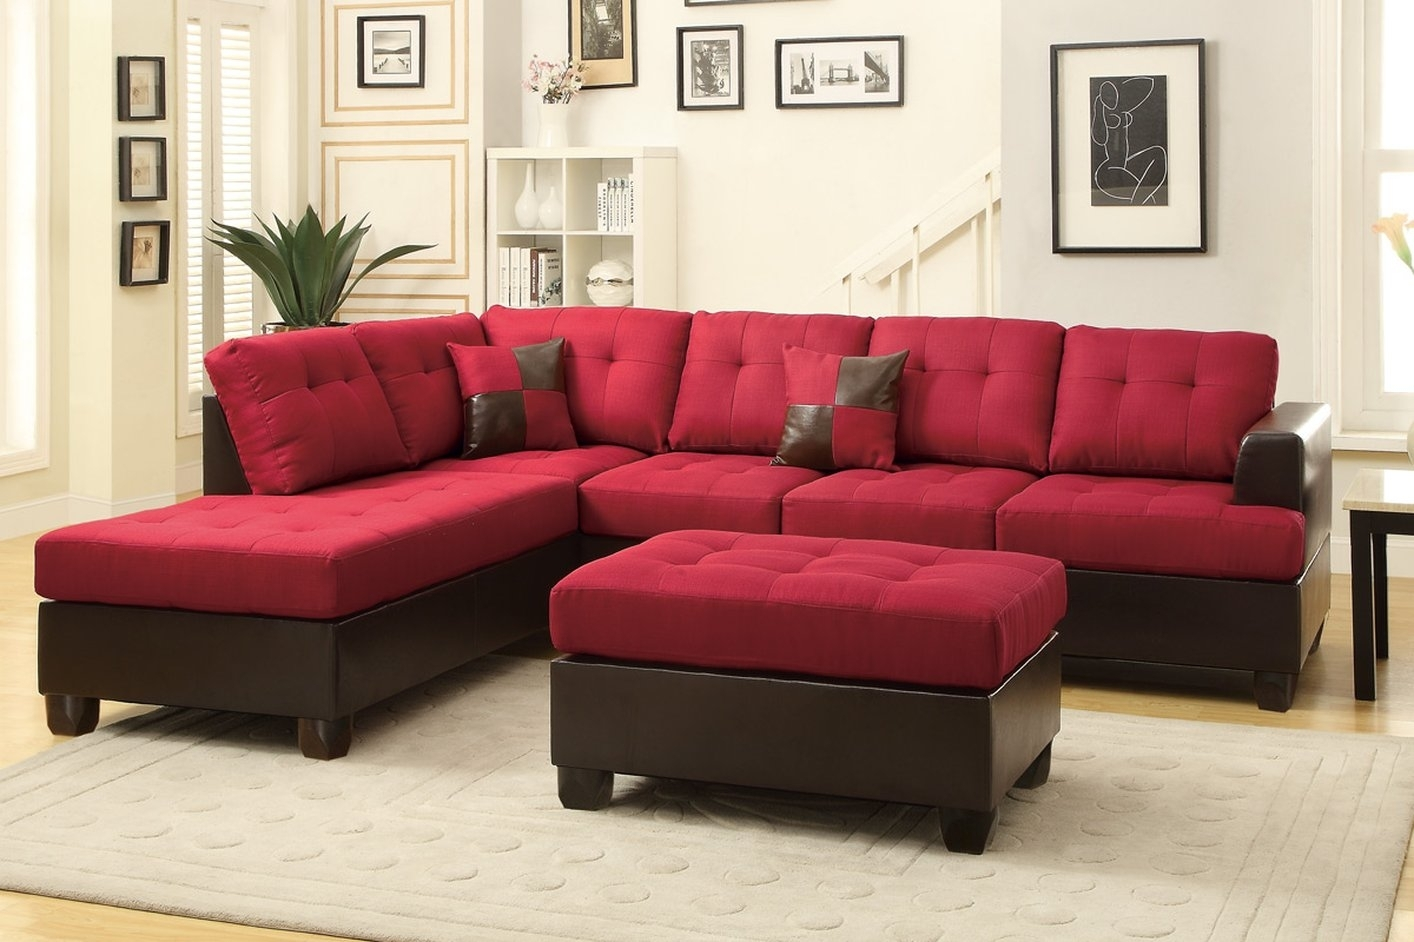 The Most Popular Red And Black Sectional Sofa 31 About Remodel With Regard To Red Black Sectional Sofas (View 4 of 10)